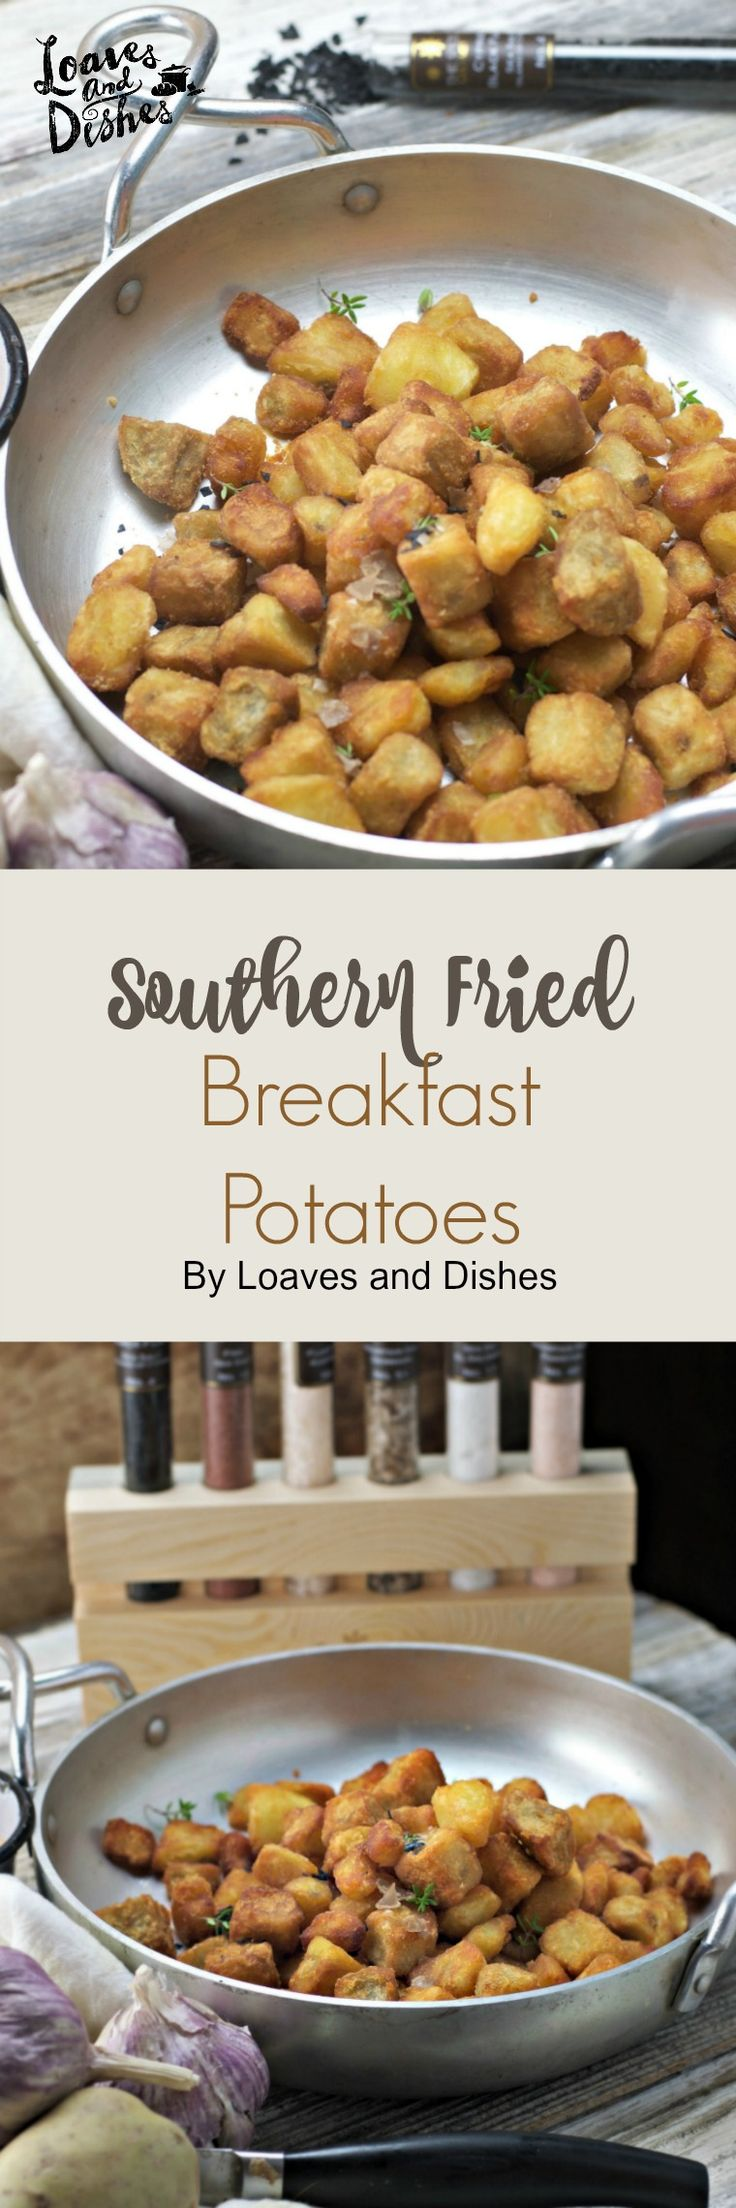 Recipe for Southern Fried Breakfast Potatoes, delicious and easy Sauce and a GIVEAWAY! #ad @Uncommon Goods